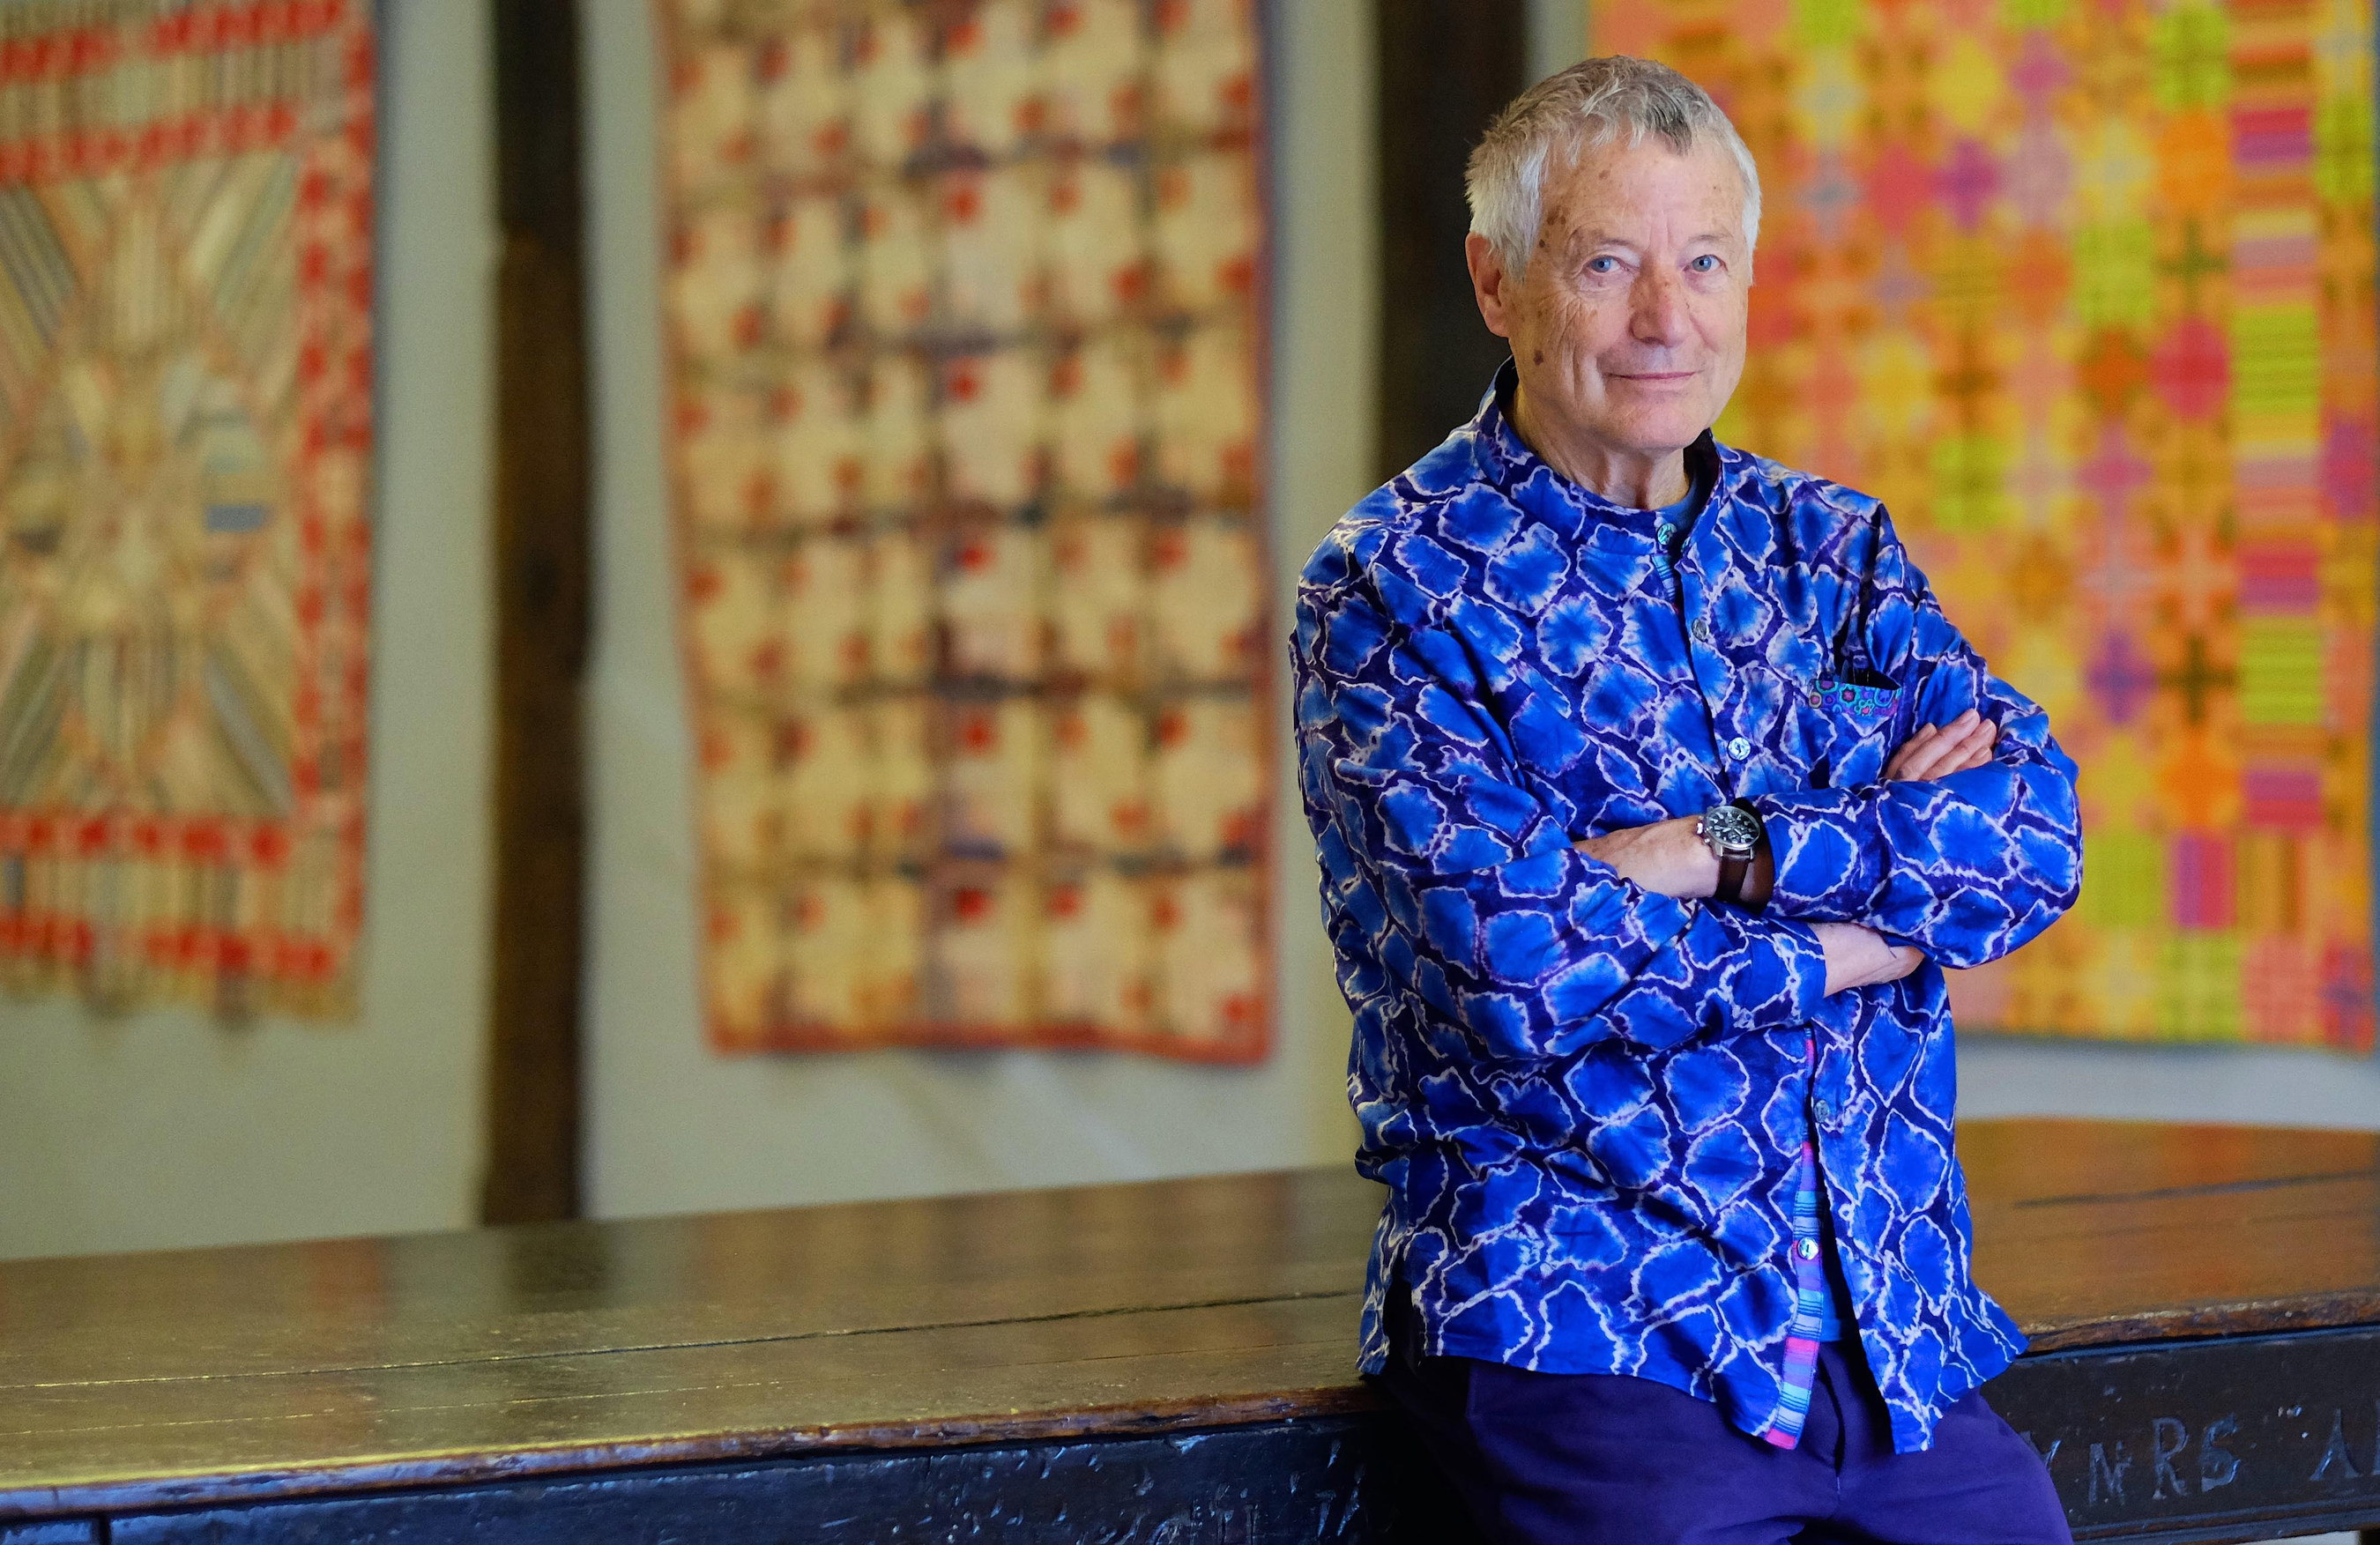 Michener to Host Celebration of Patchwork Art Featuring Internationally Renowned Artist Kaffe Fassett